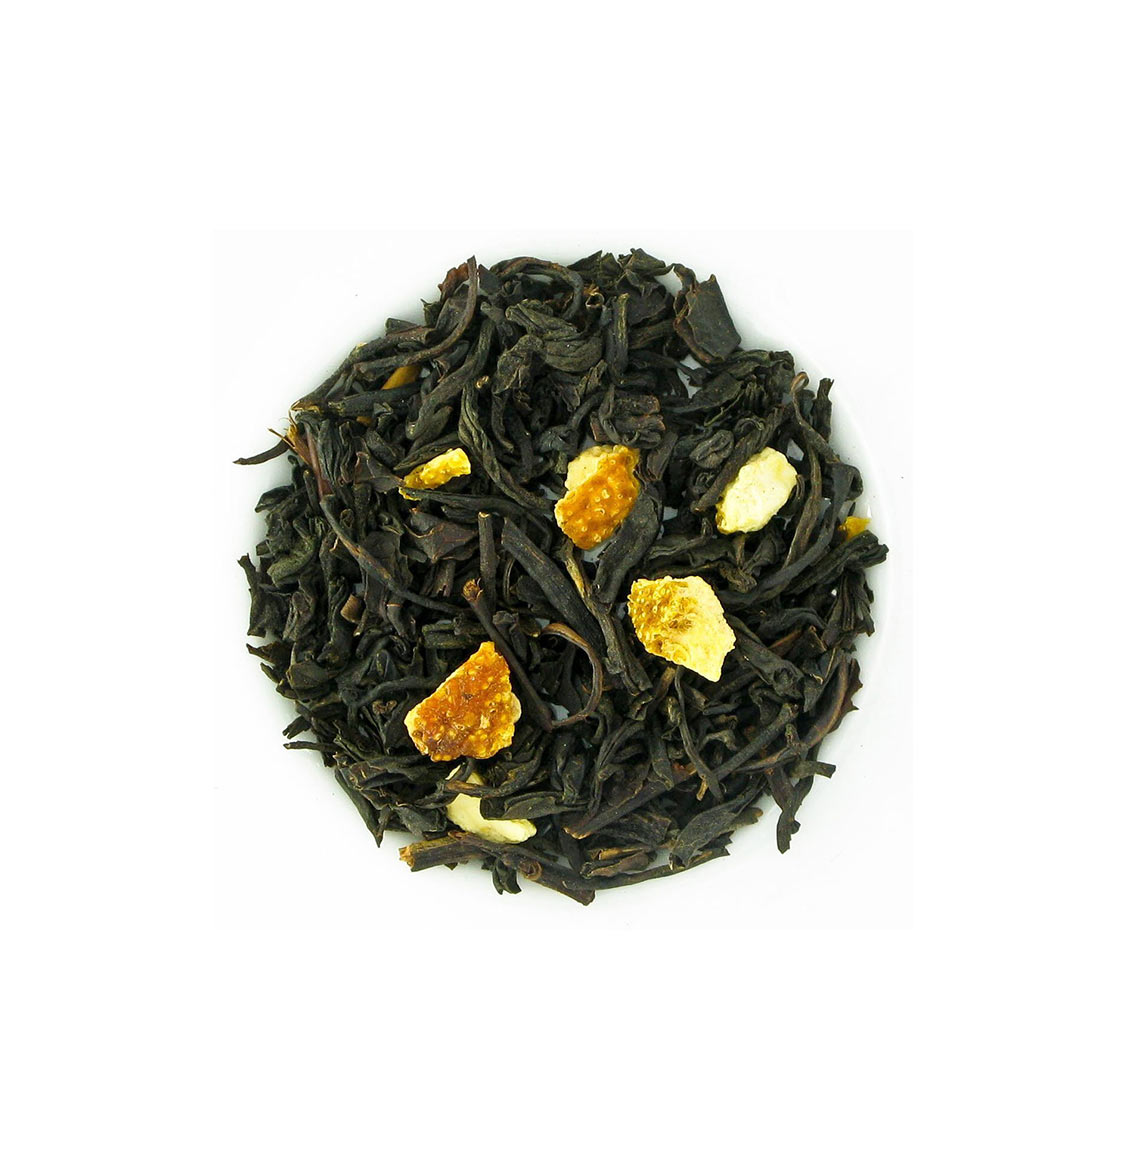 Kusmi Tea Prince Vladimir Exclusive Blend 125g